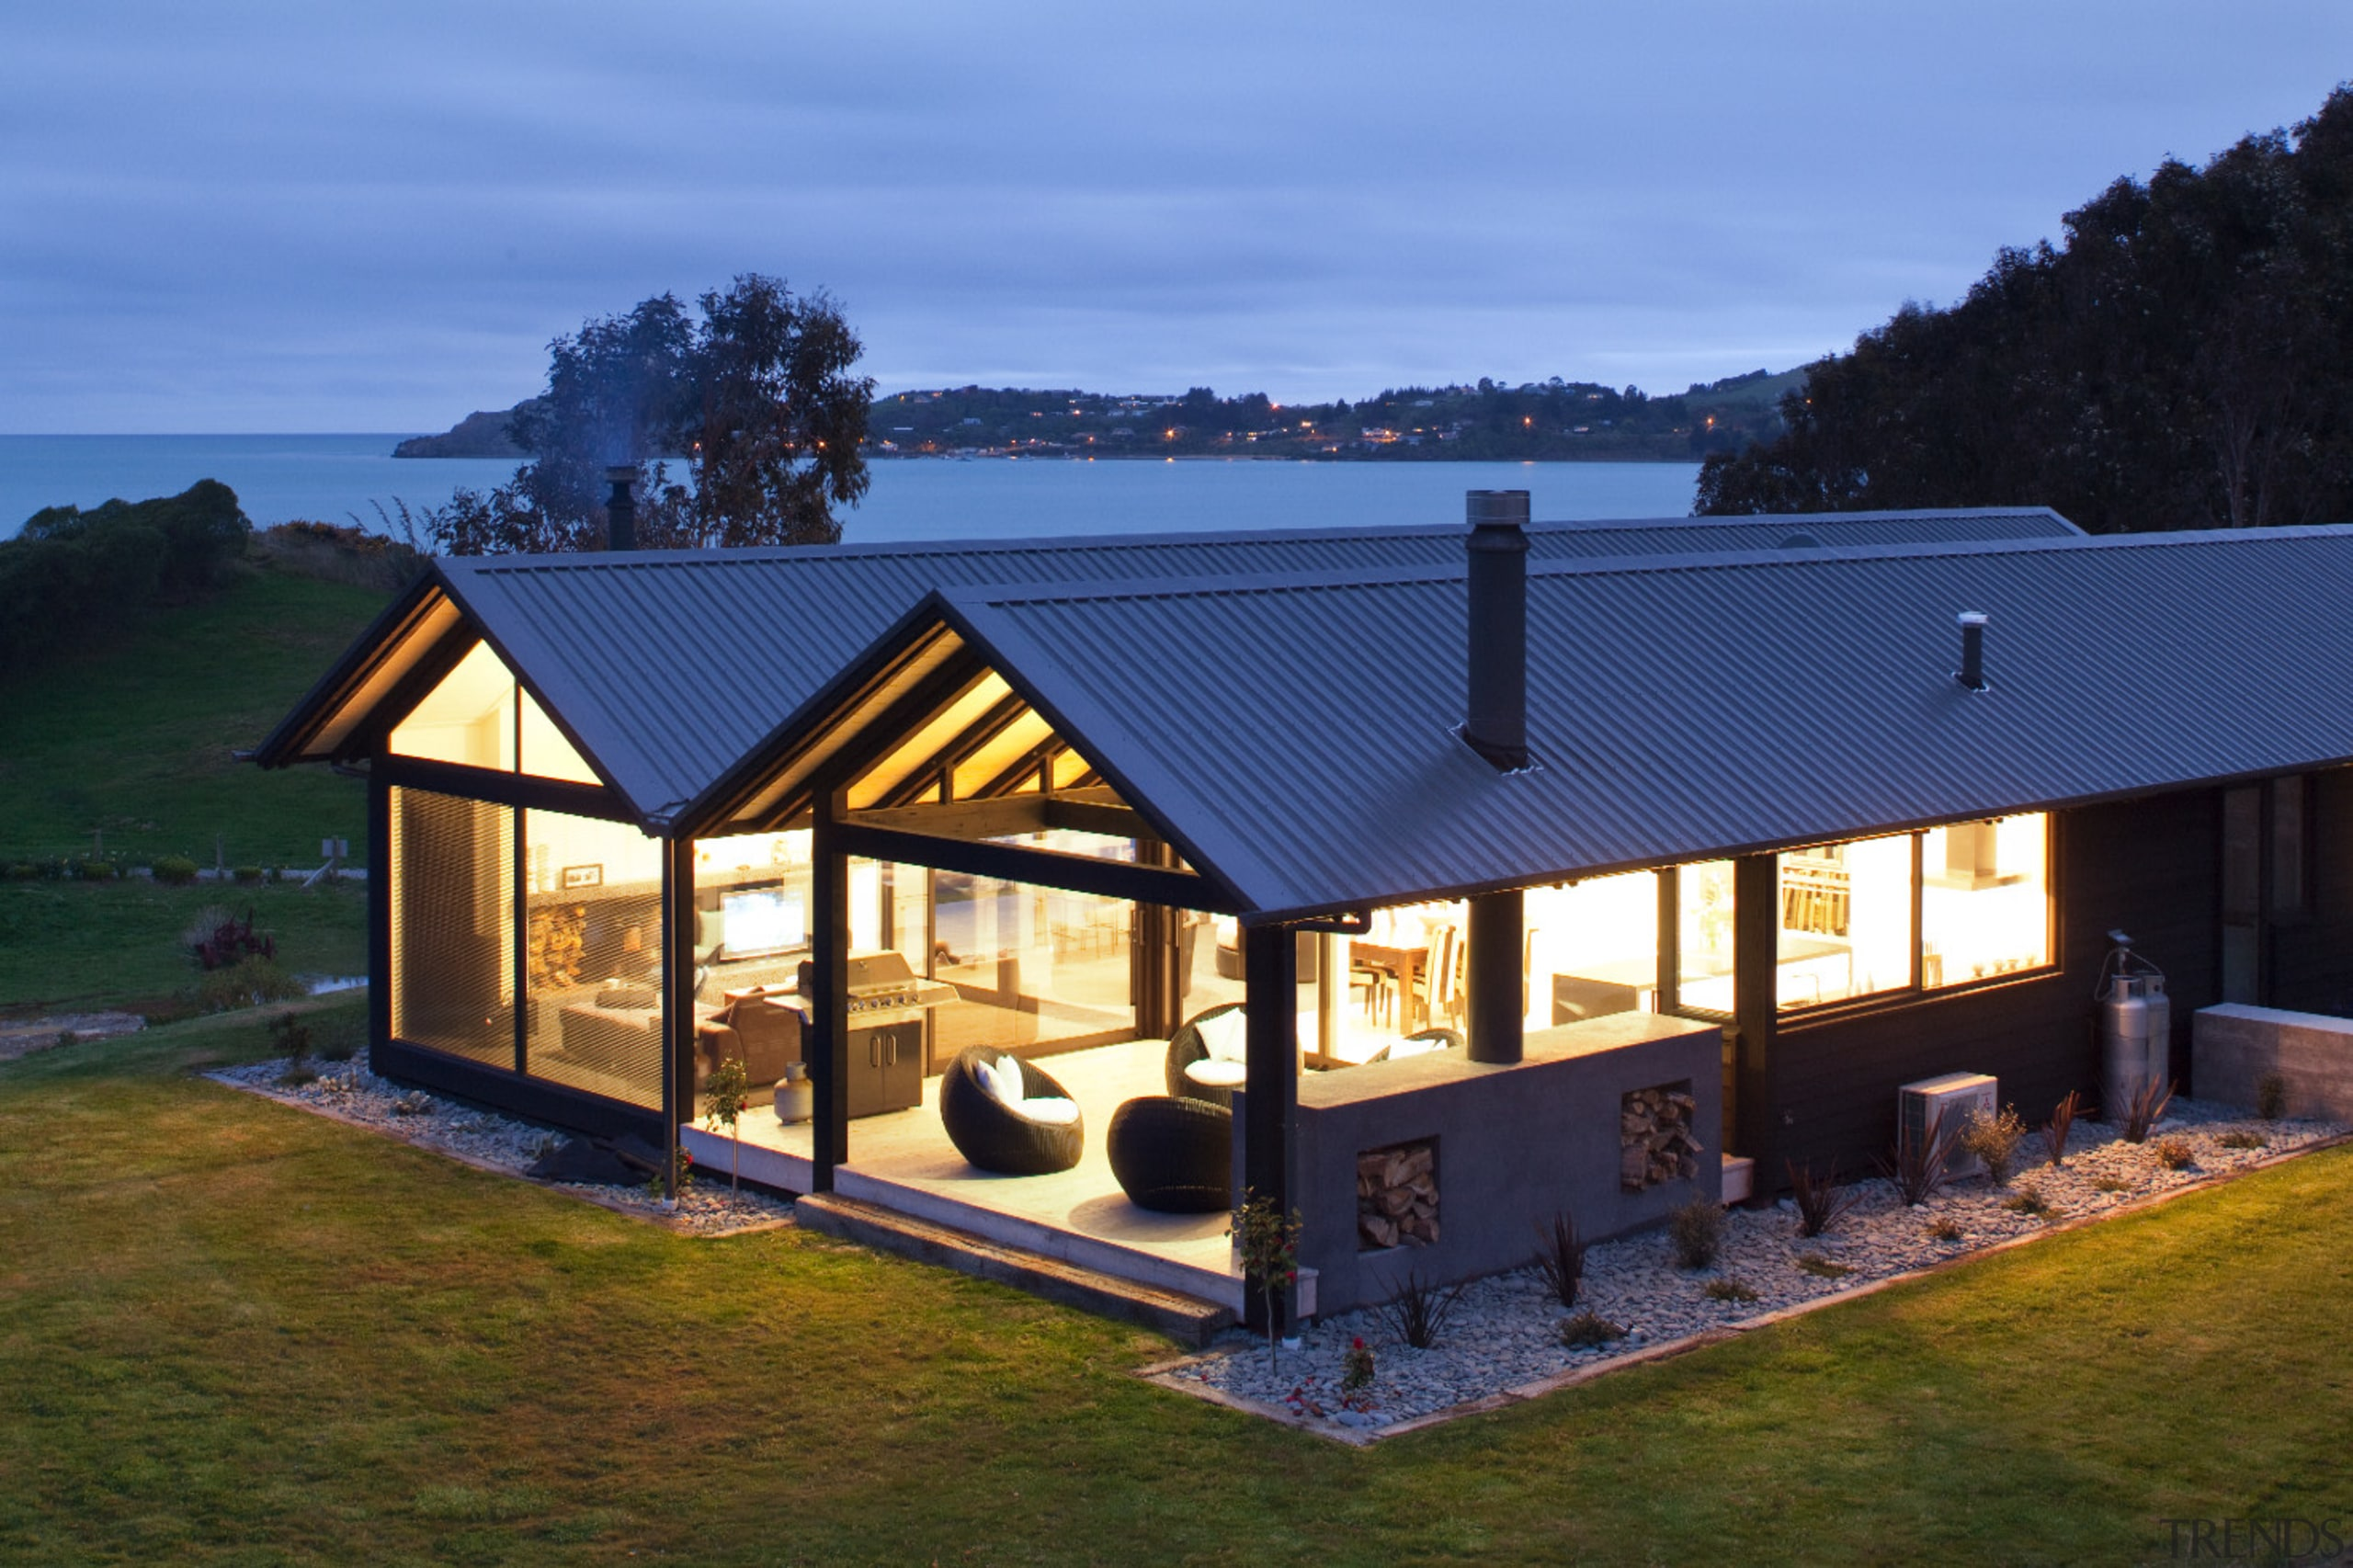 Twin-gabled holiday home near Oamaru, North Otago - cottage, estate, facade, farmhouse, home, house, property, real estate, roof, siding, window, teal